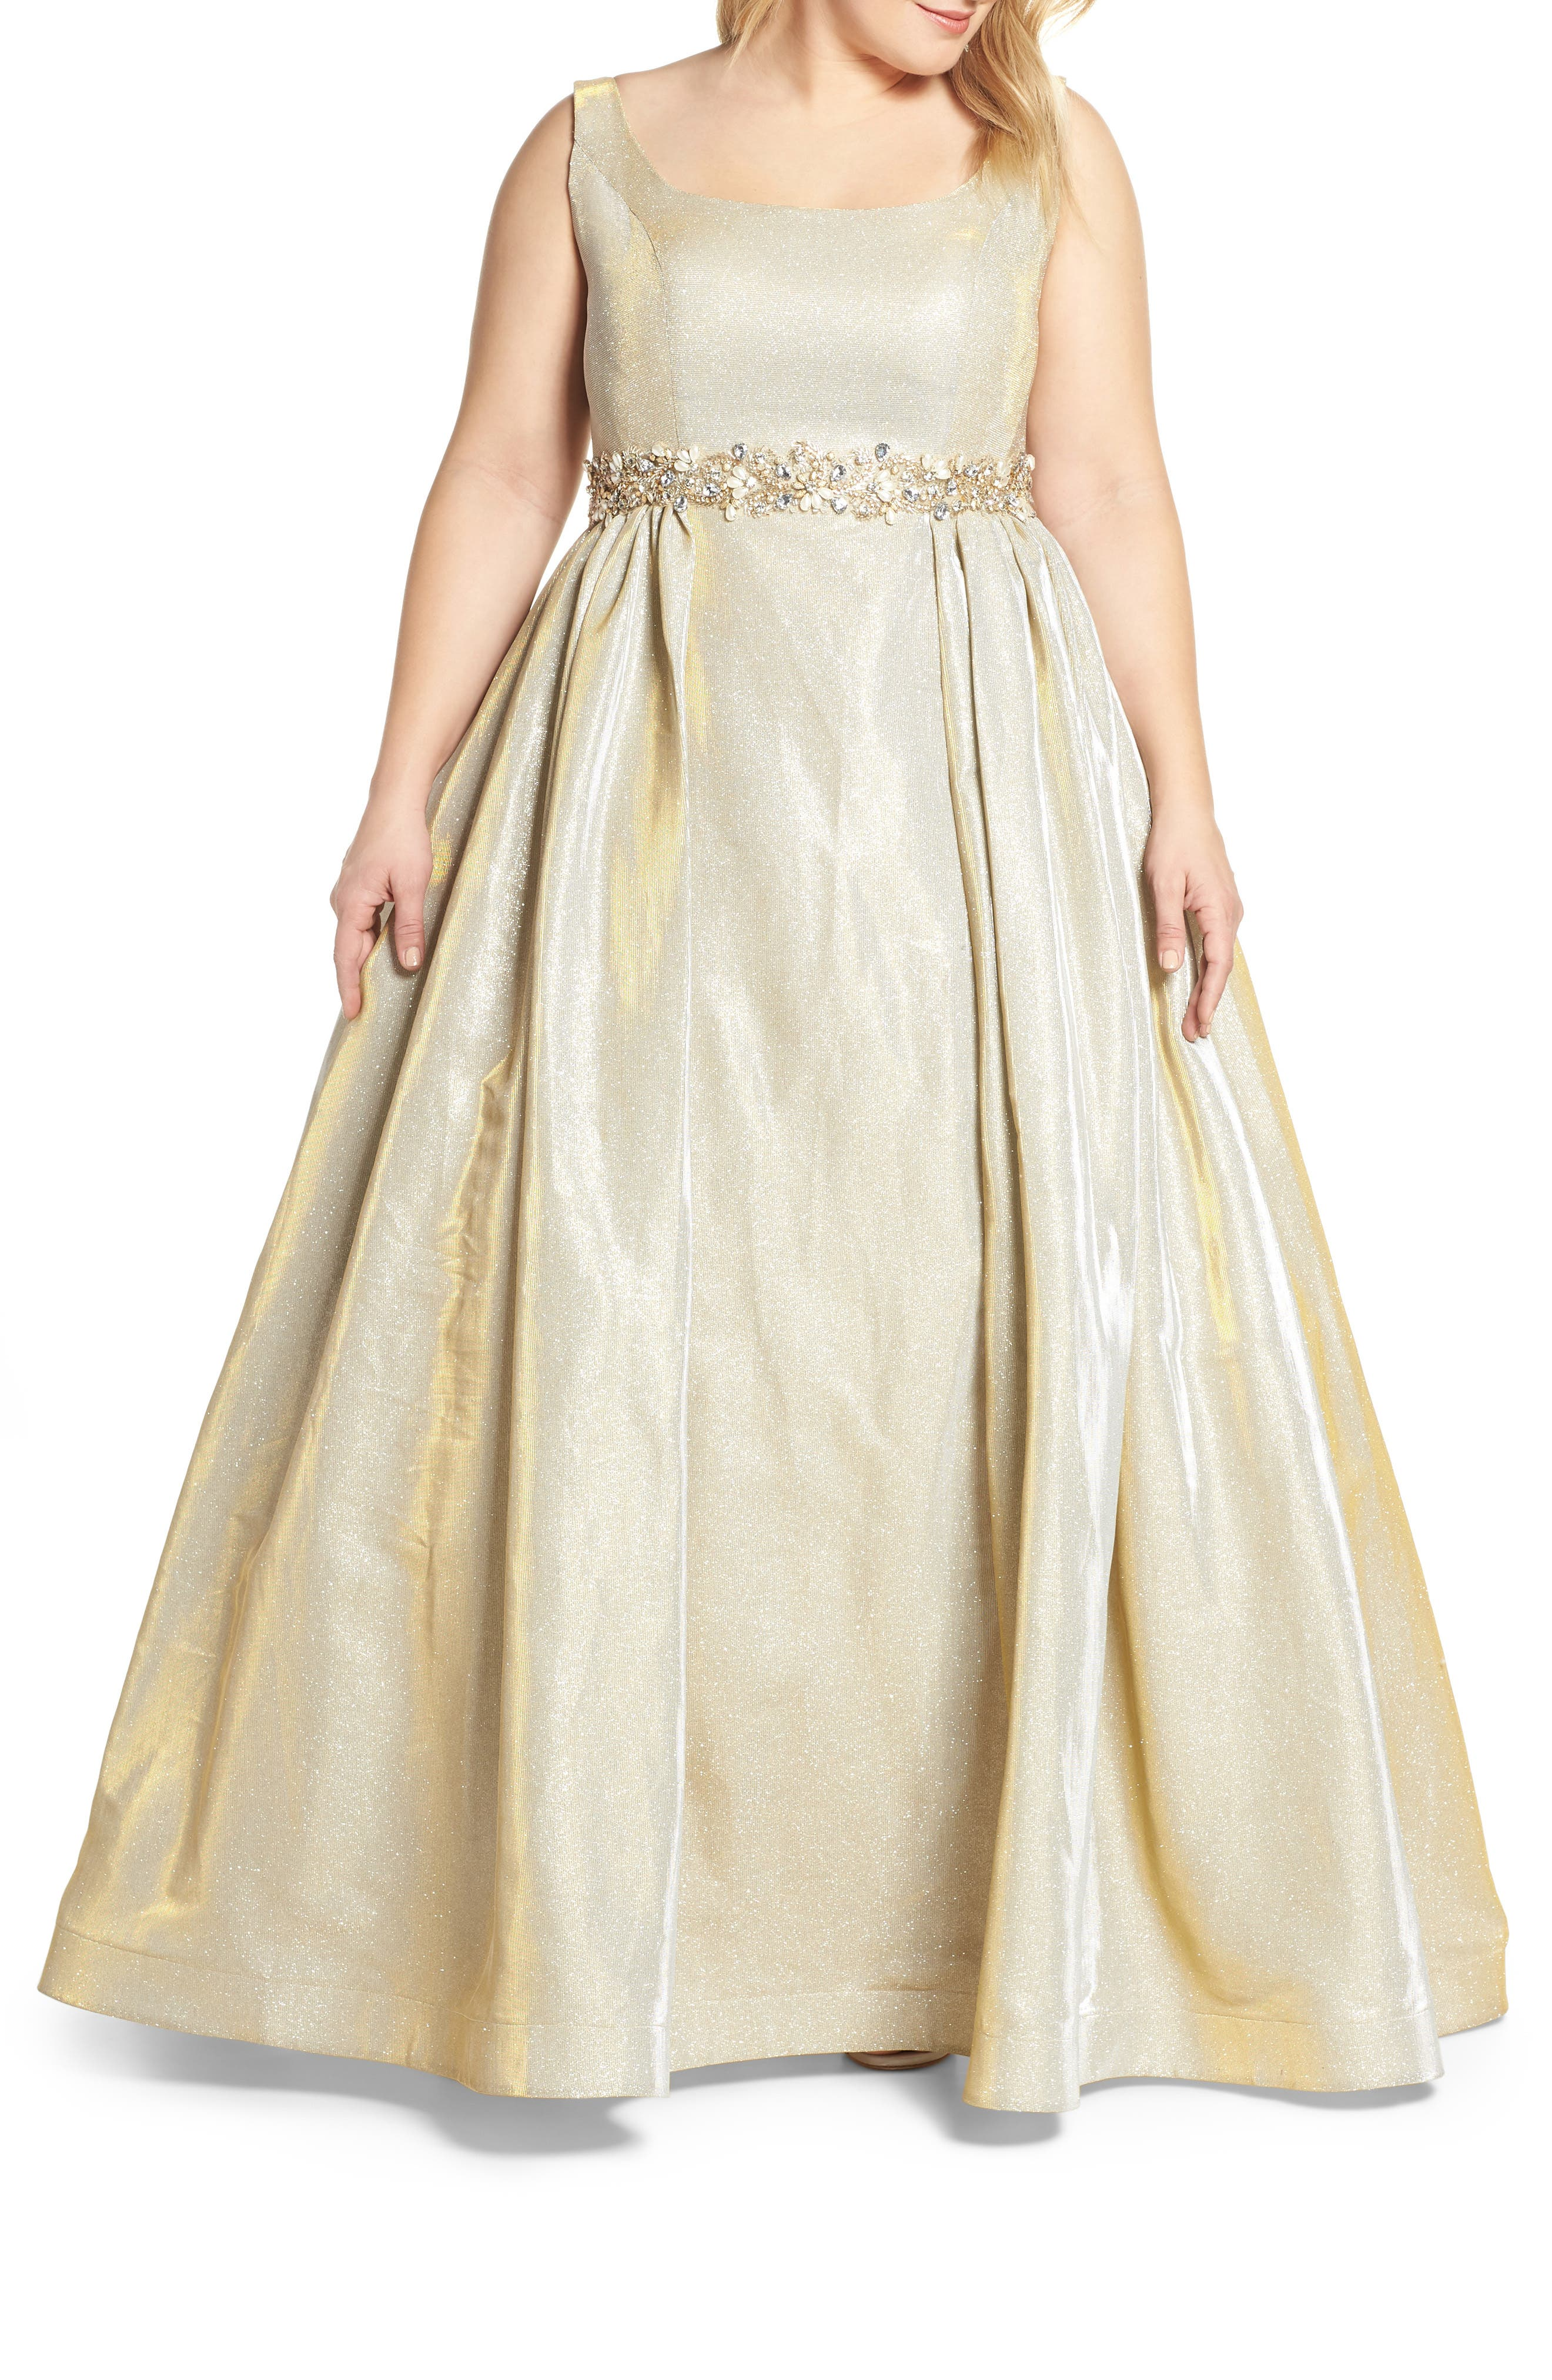 Plus Size MAC Duggal Jeweled Waist Metallic Evening Dress, Yellow